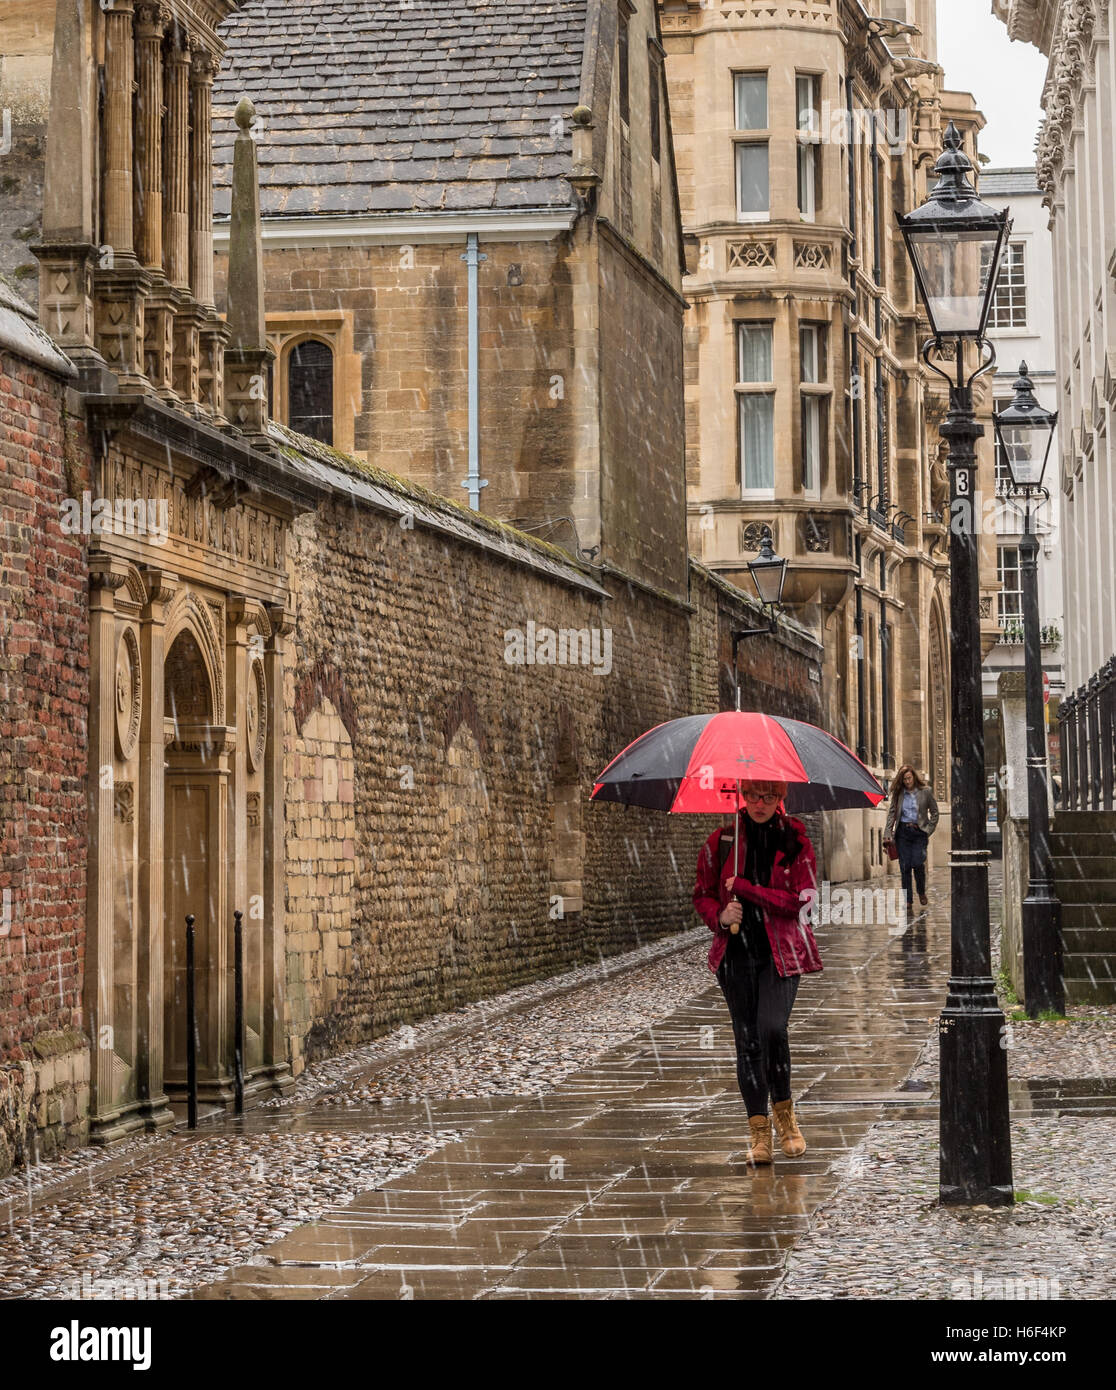 Young Woman walking in heavy rain with umbrella in Cambridge, near historic college buildings - Stock Image